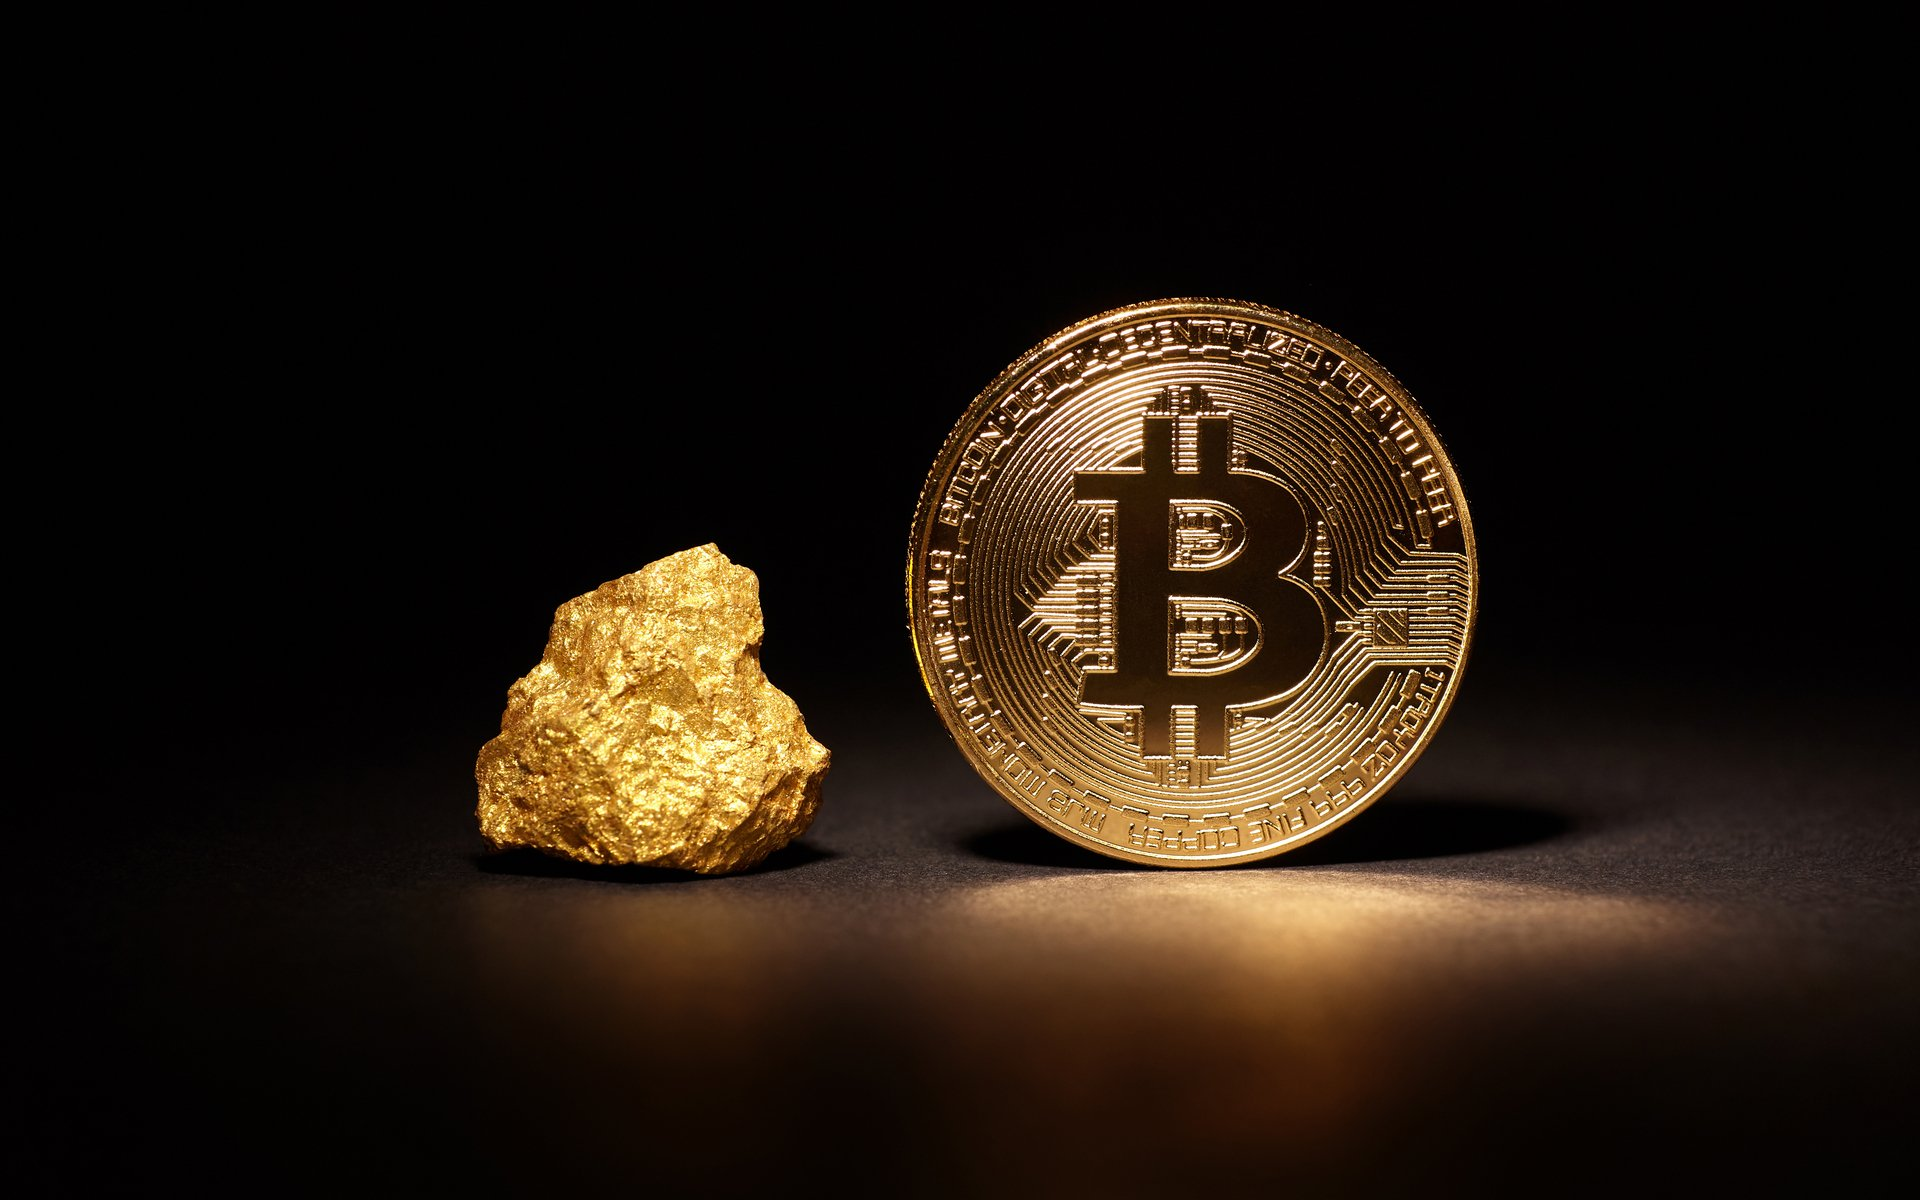 Uncanny Historic Gold Bitcoin Price Charts Almost Identical